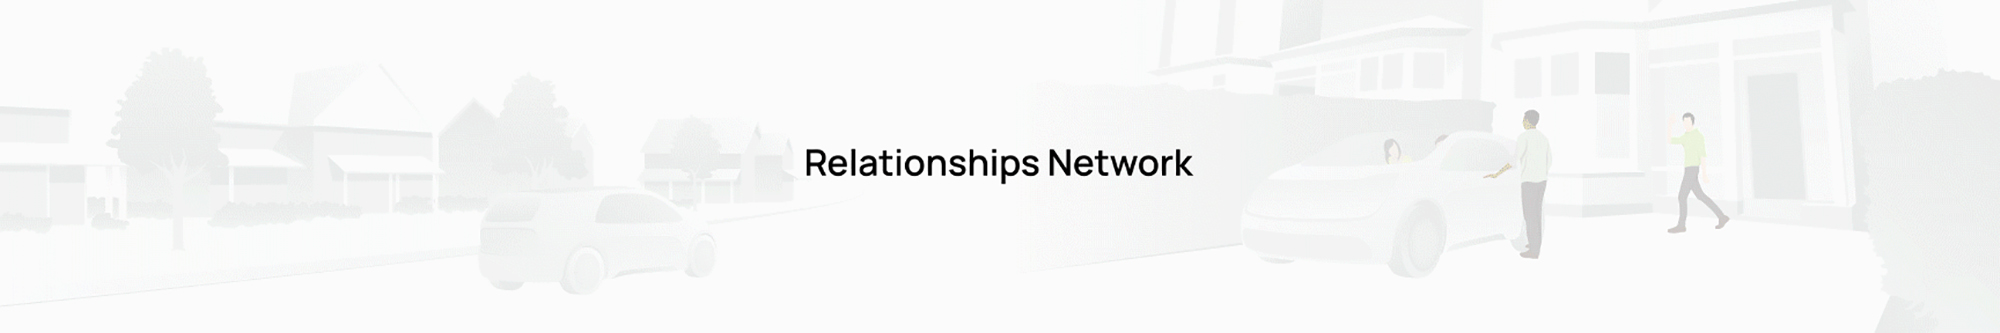 Relationship network animation